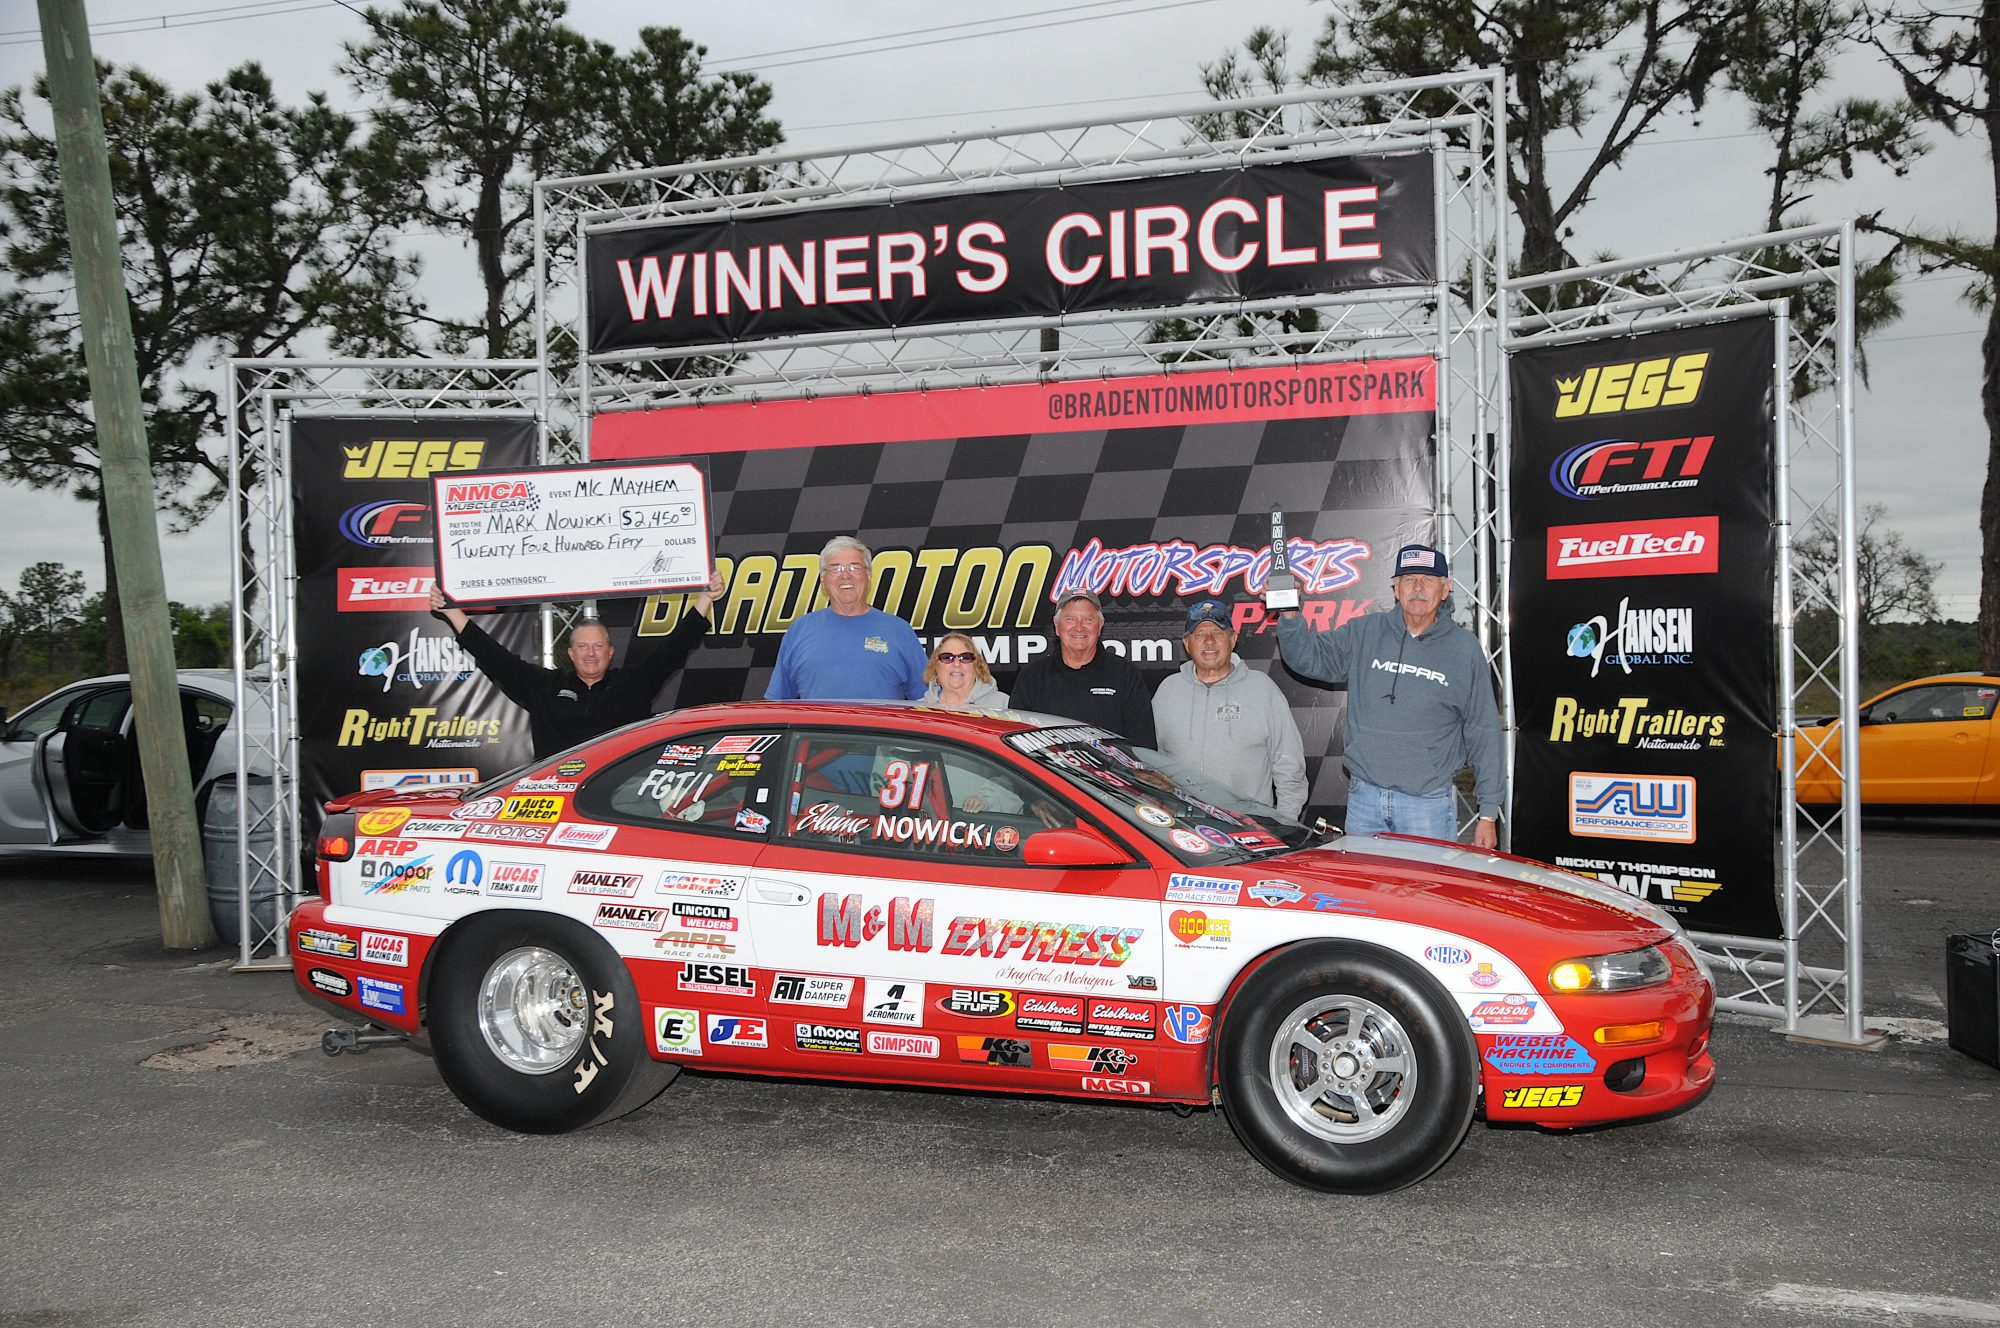 Mark Nowicki and his car in the winners circle